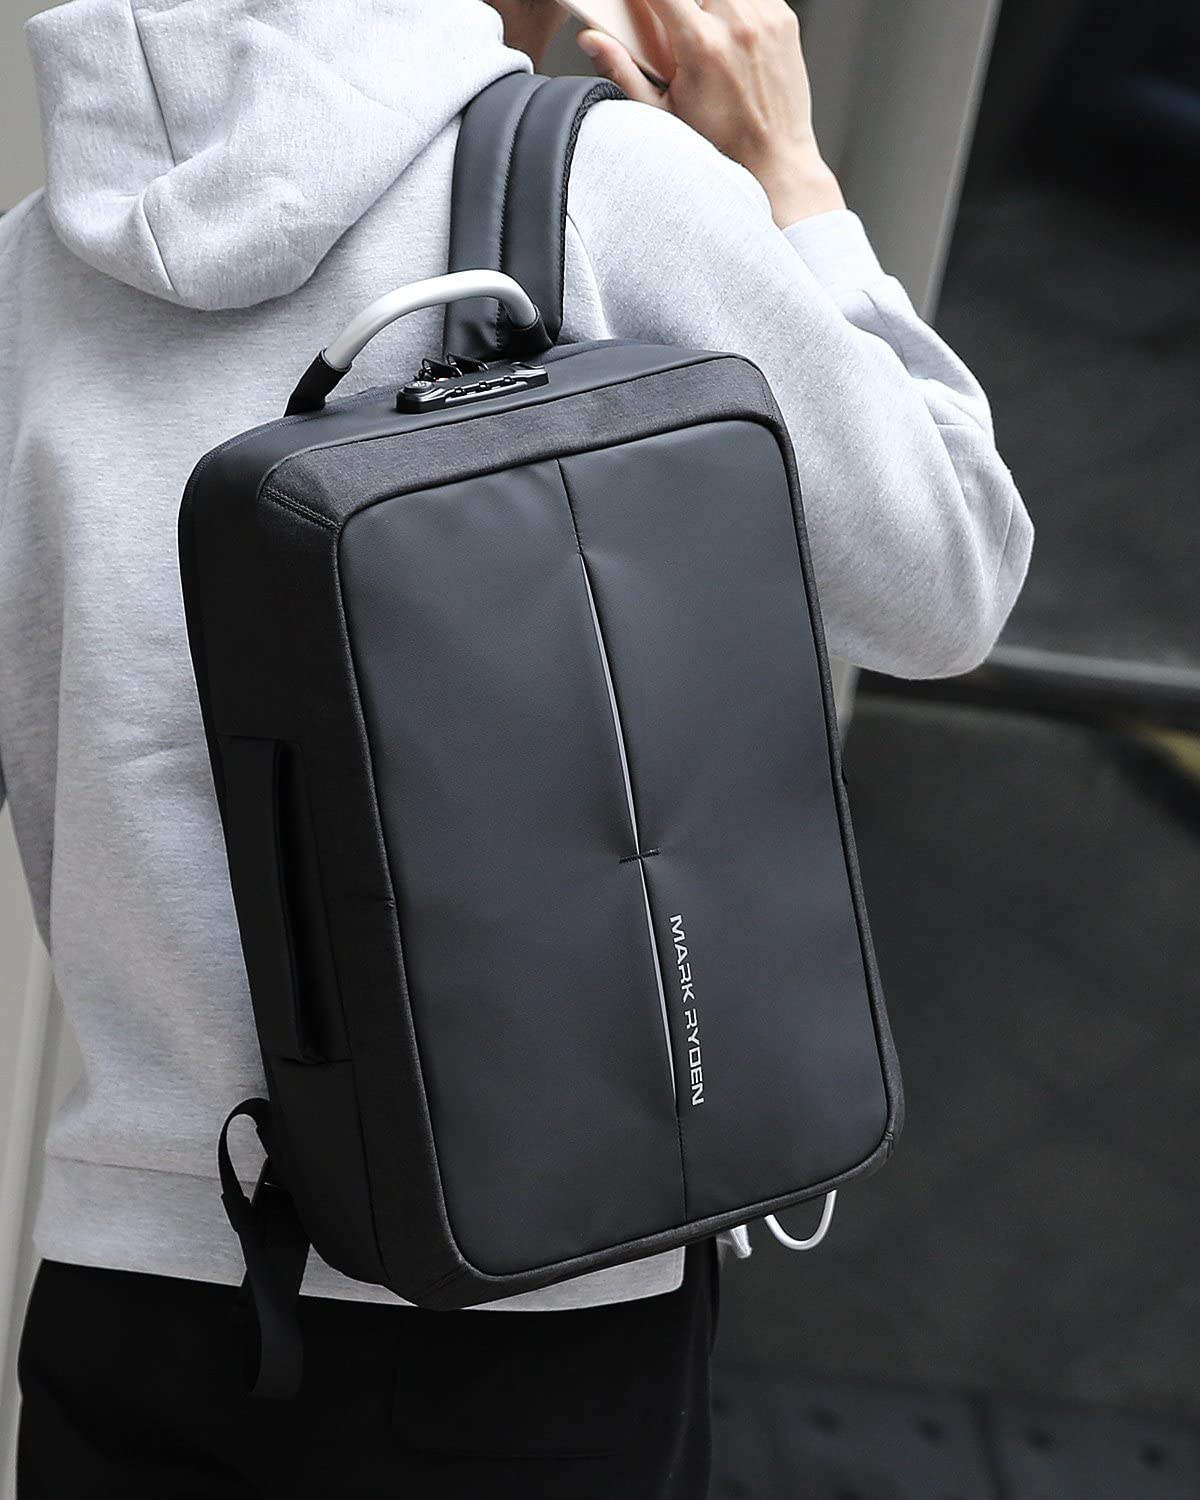 Mark Ryden Anti-Theft Cosmo Series Water Resistant Laptop Backpack with USB Charging Port Fits 15.6-Inch Laptop + Numeric Lock 71qKE0OspdLSL1500_